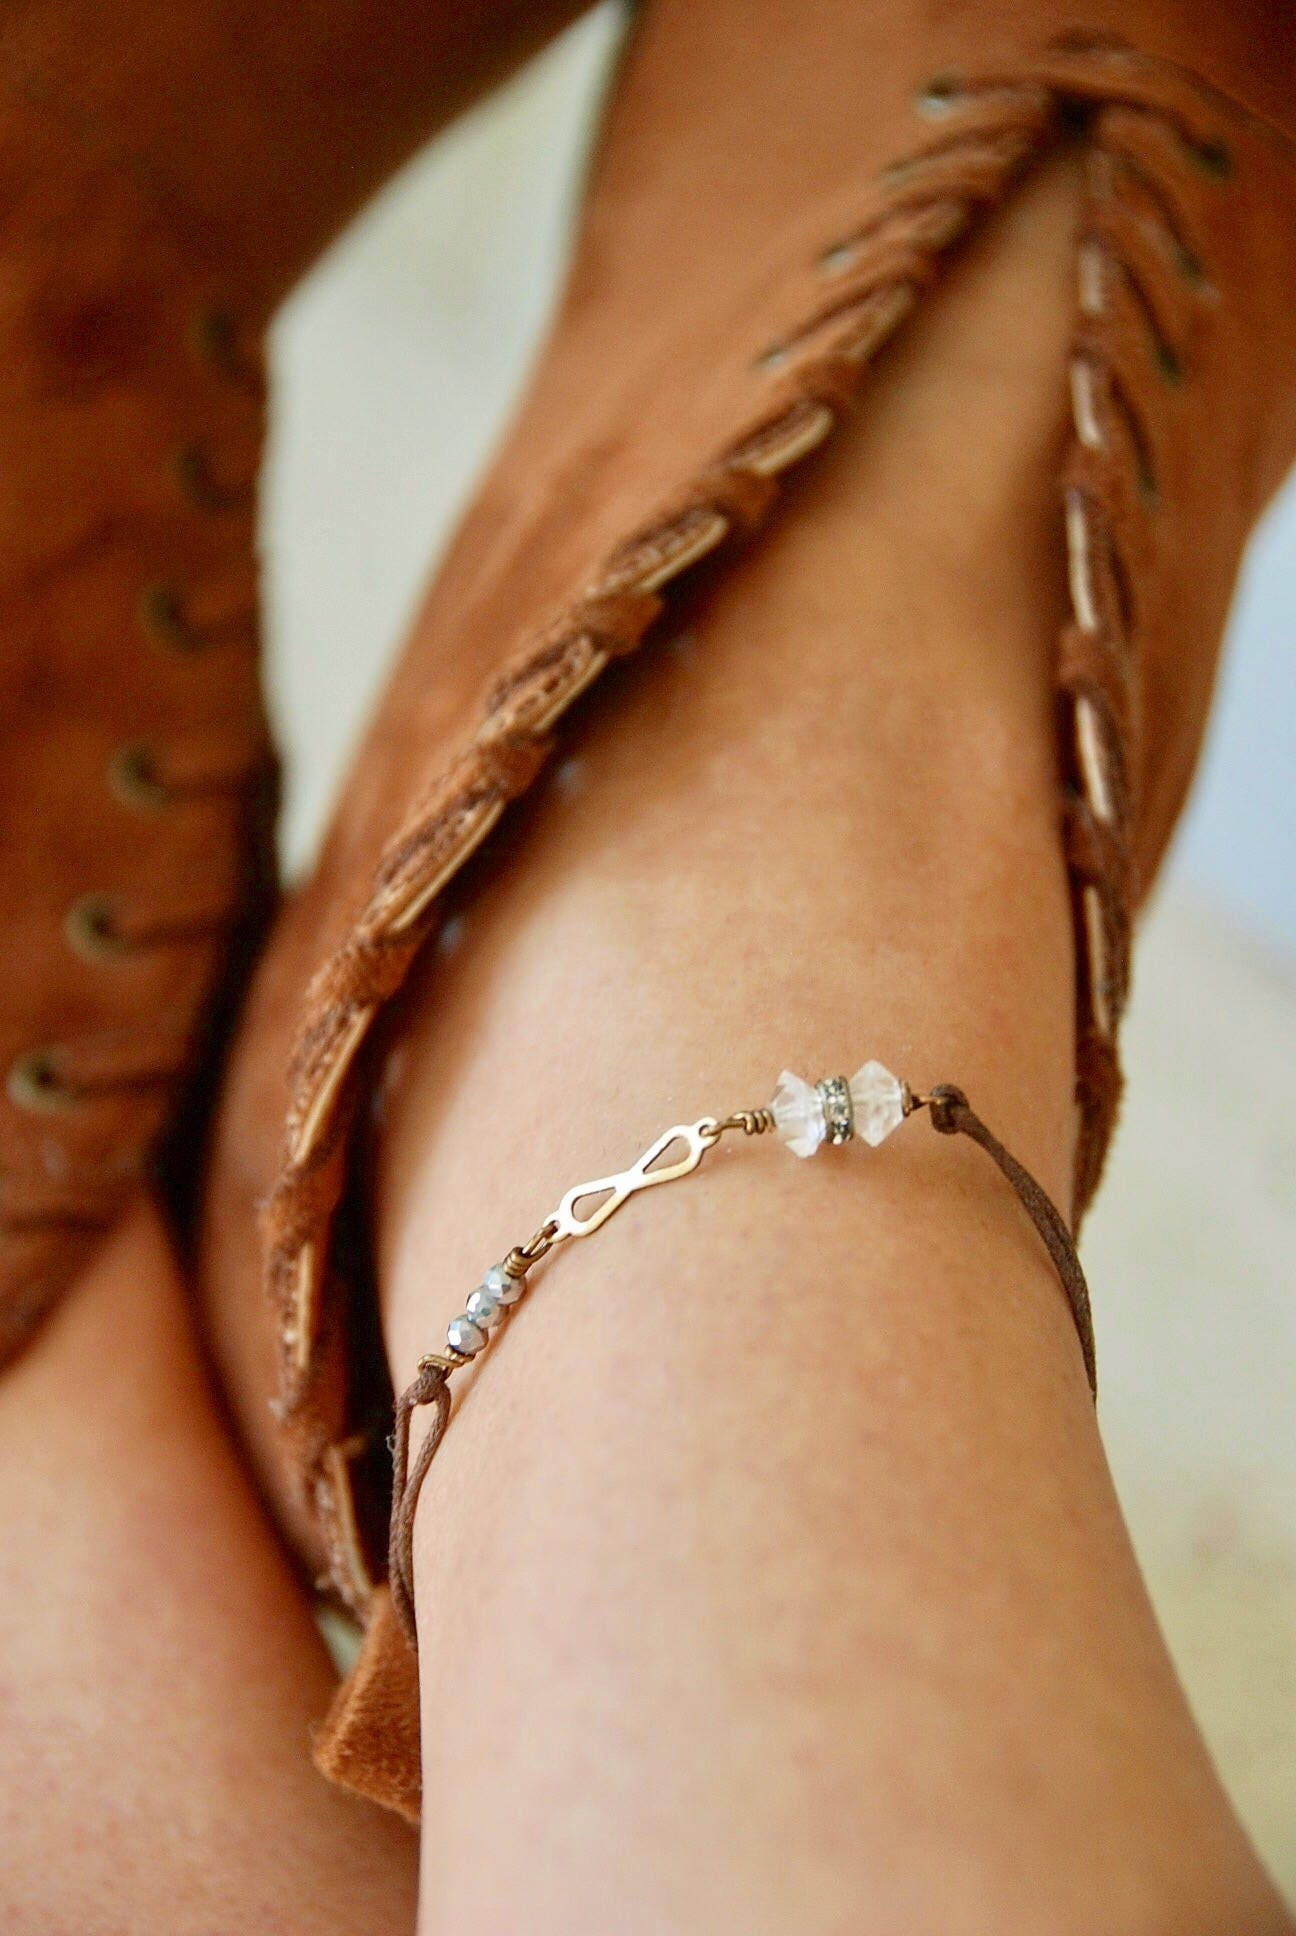 bracelets with watch bracelet to string youtube knot anklet make how square adjustable beads